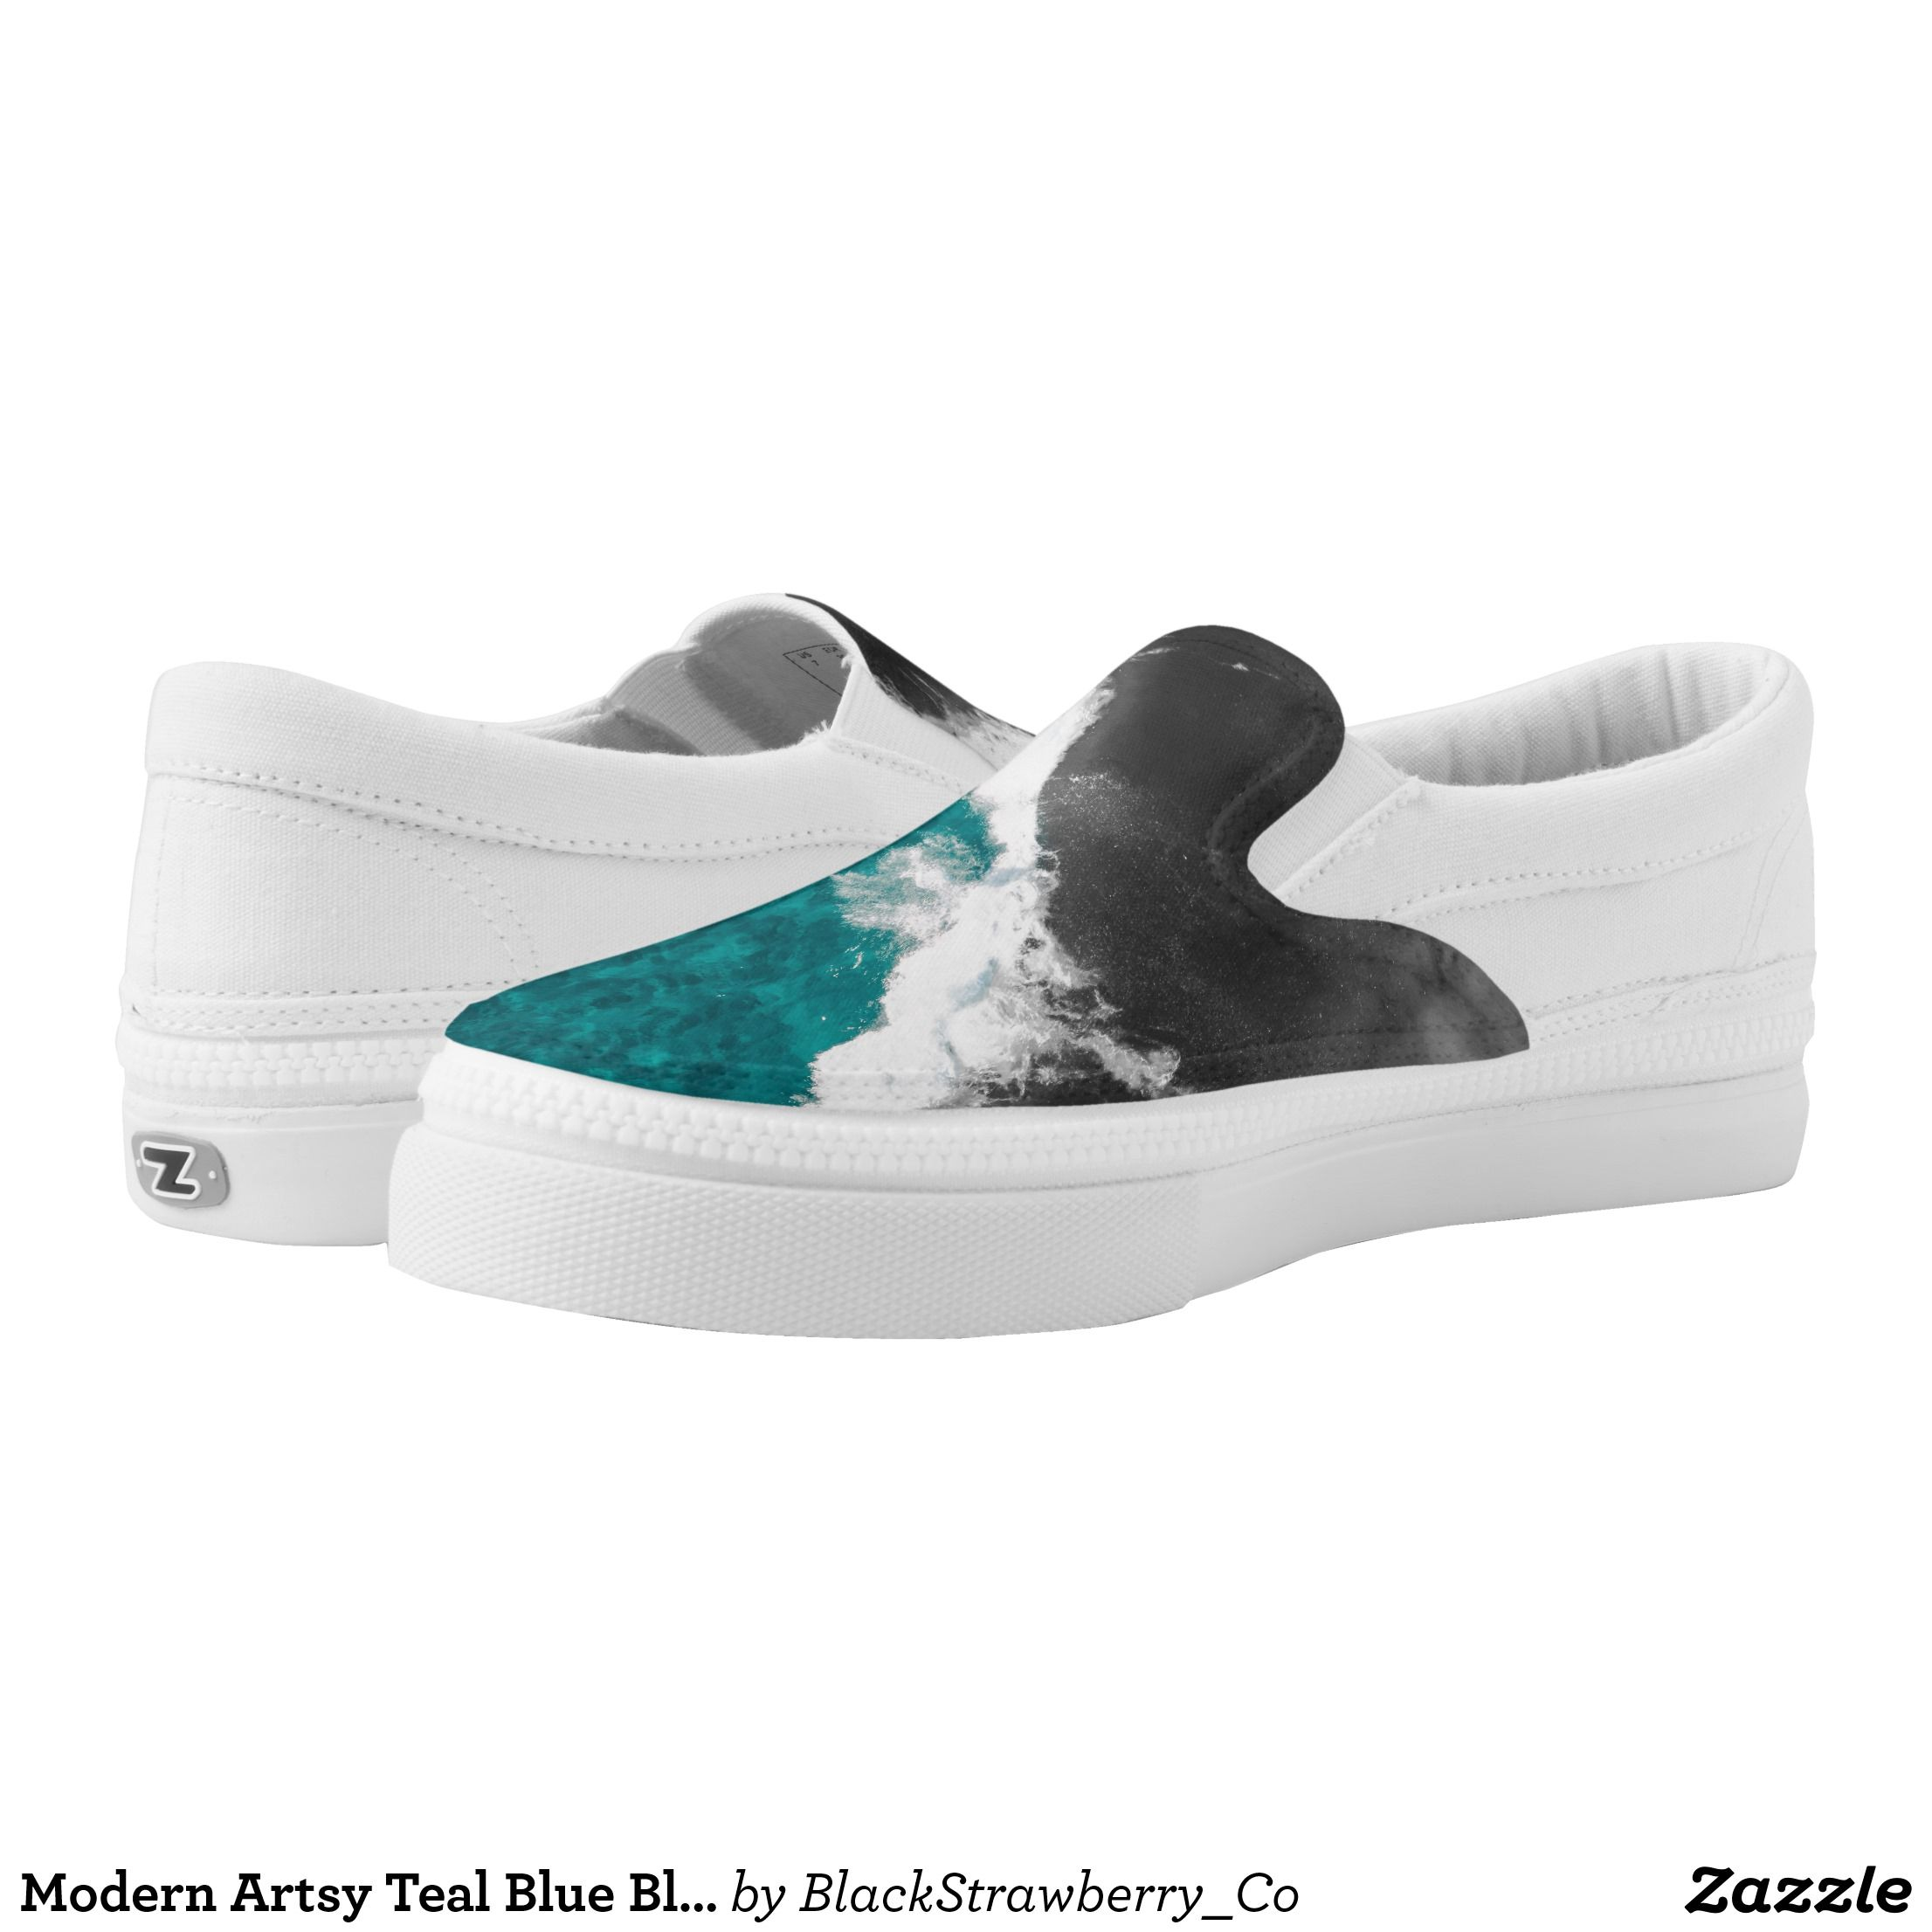 023a5cd7a373 Modern Artsy Teal Blue Black Ocean Beach Waves Slip-On Sneakers -  Canvas-Top Rubber-Sole Athletic Shoes By Talented Fashion And Graphic  Designers -  shoes ...